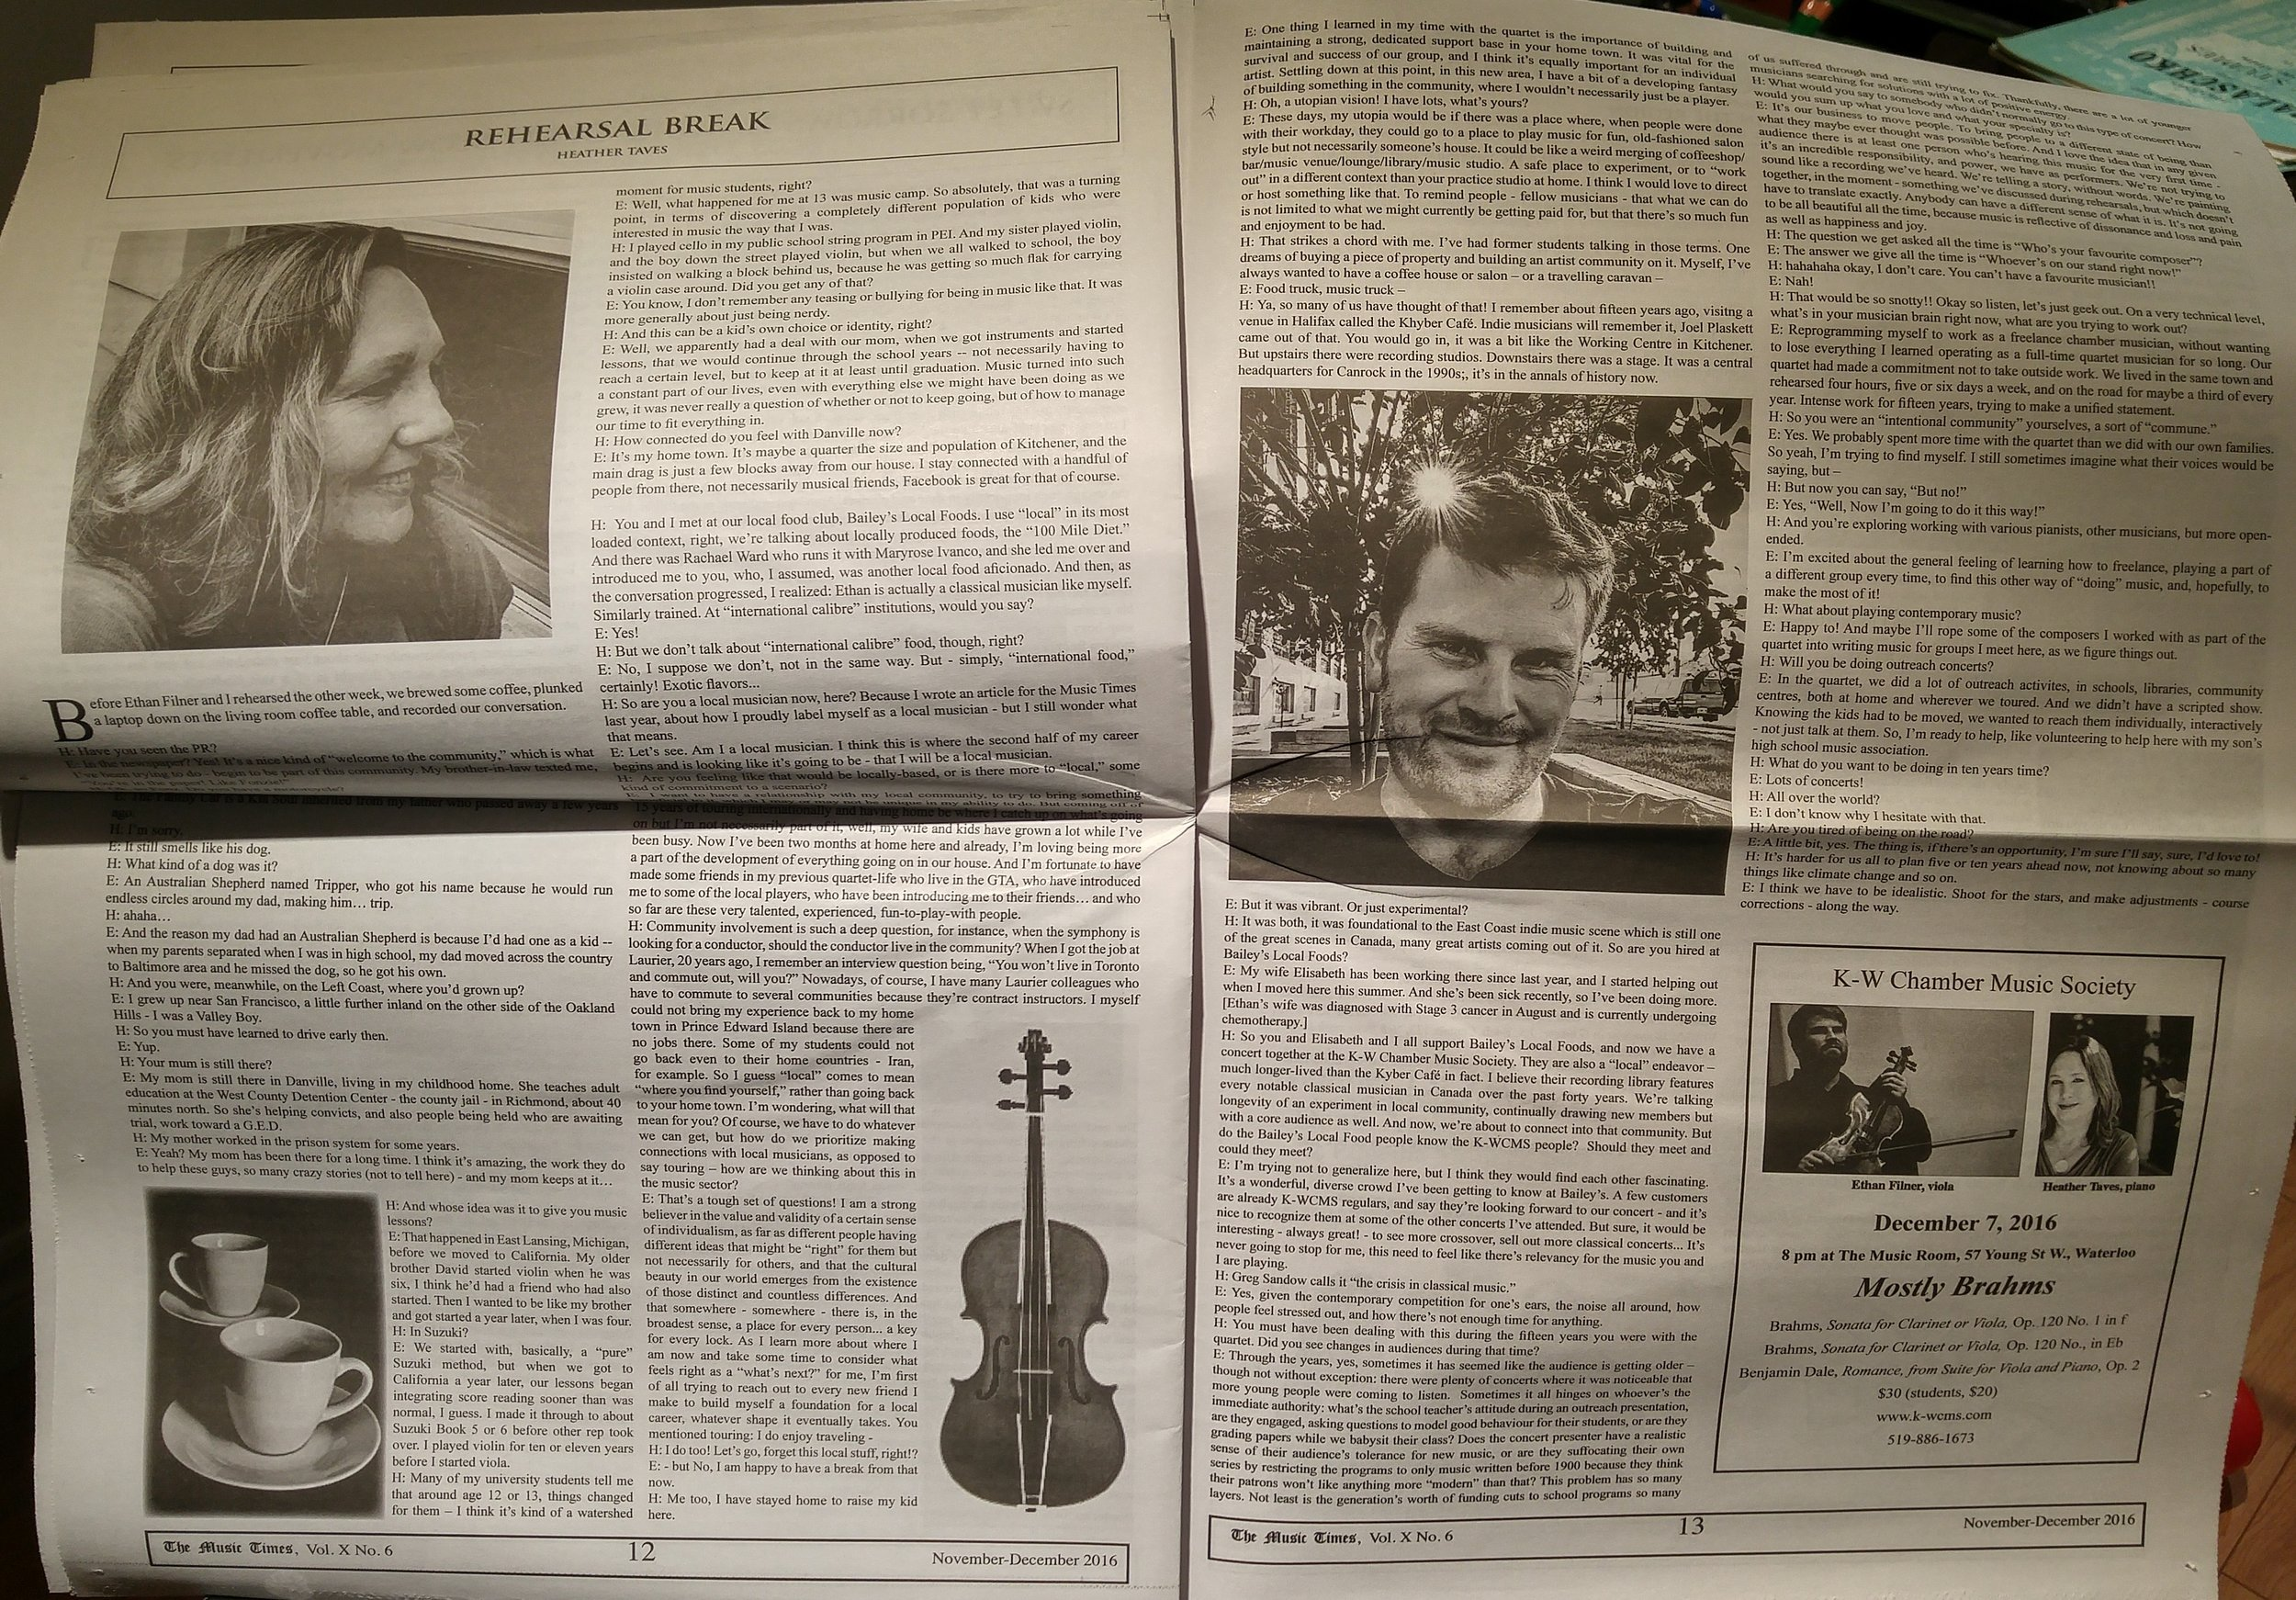 published in advance of our December 7 2016 viola+piano duo recital on the KWCMS series